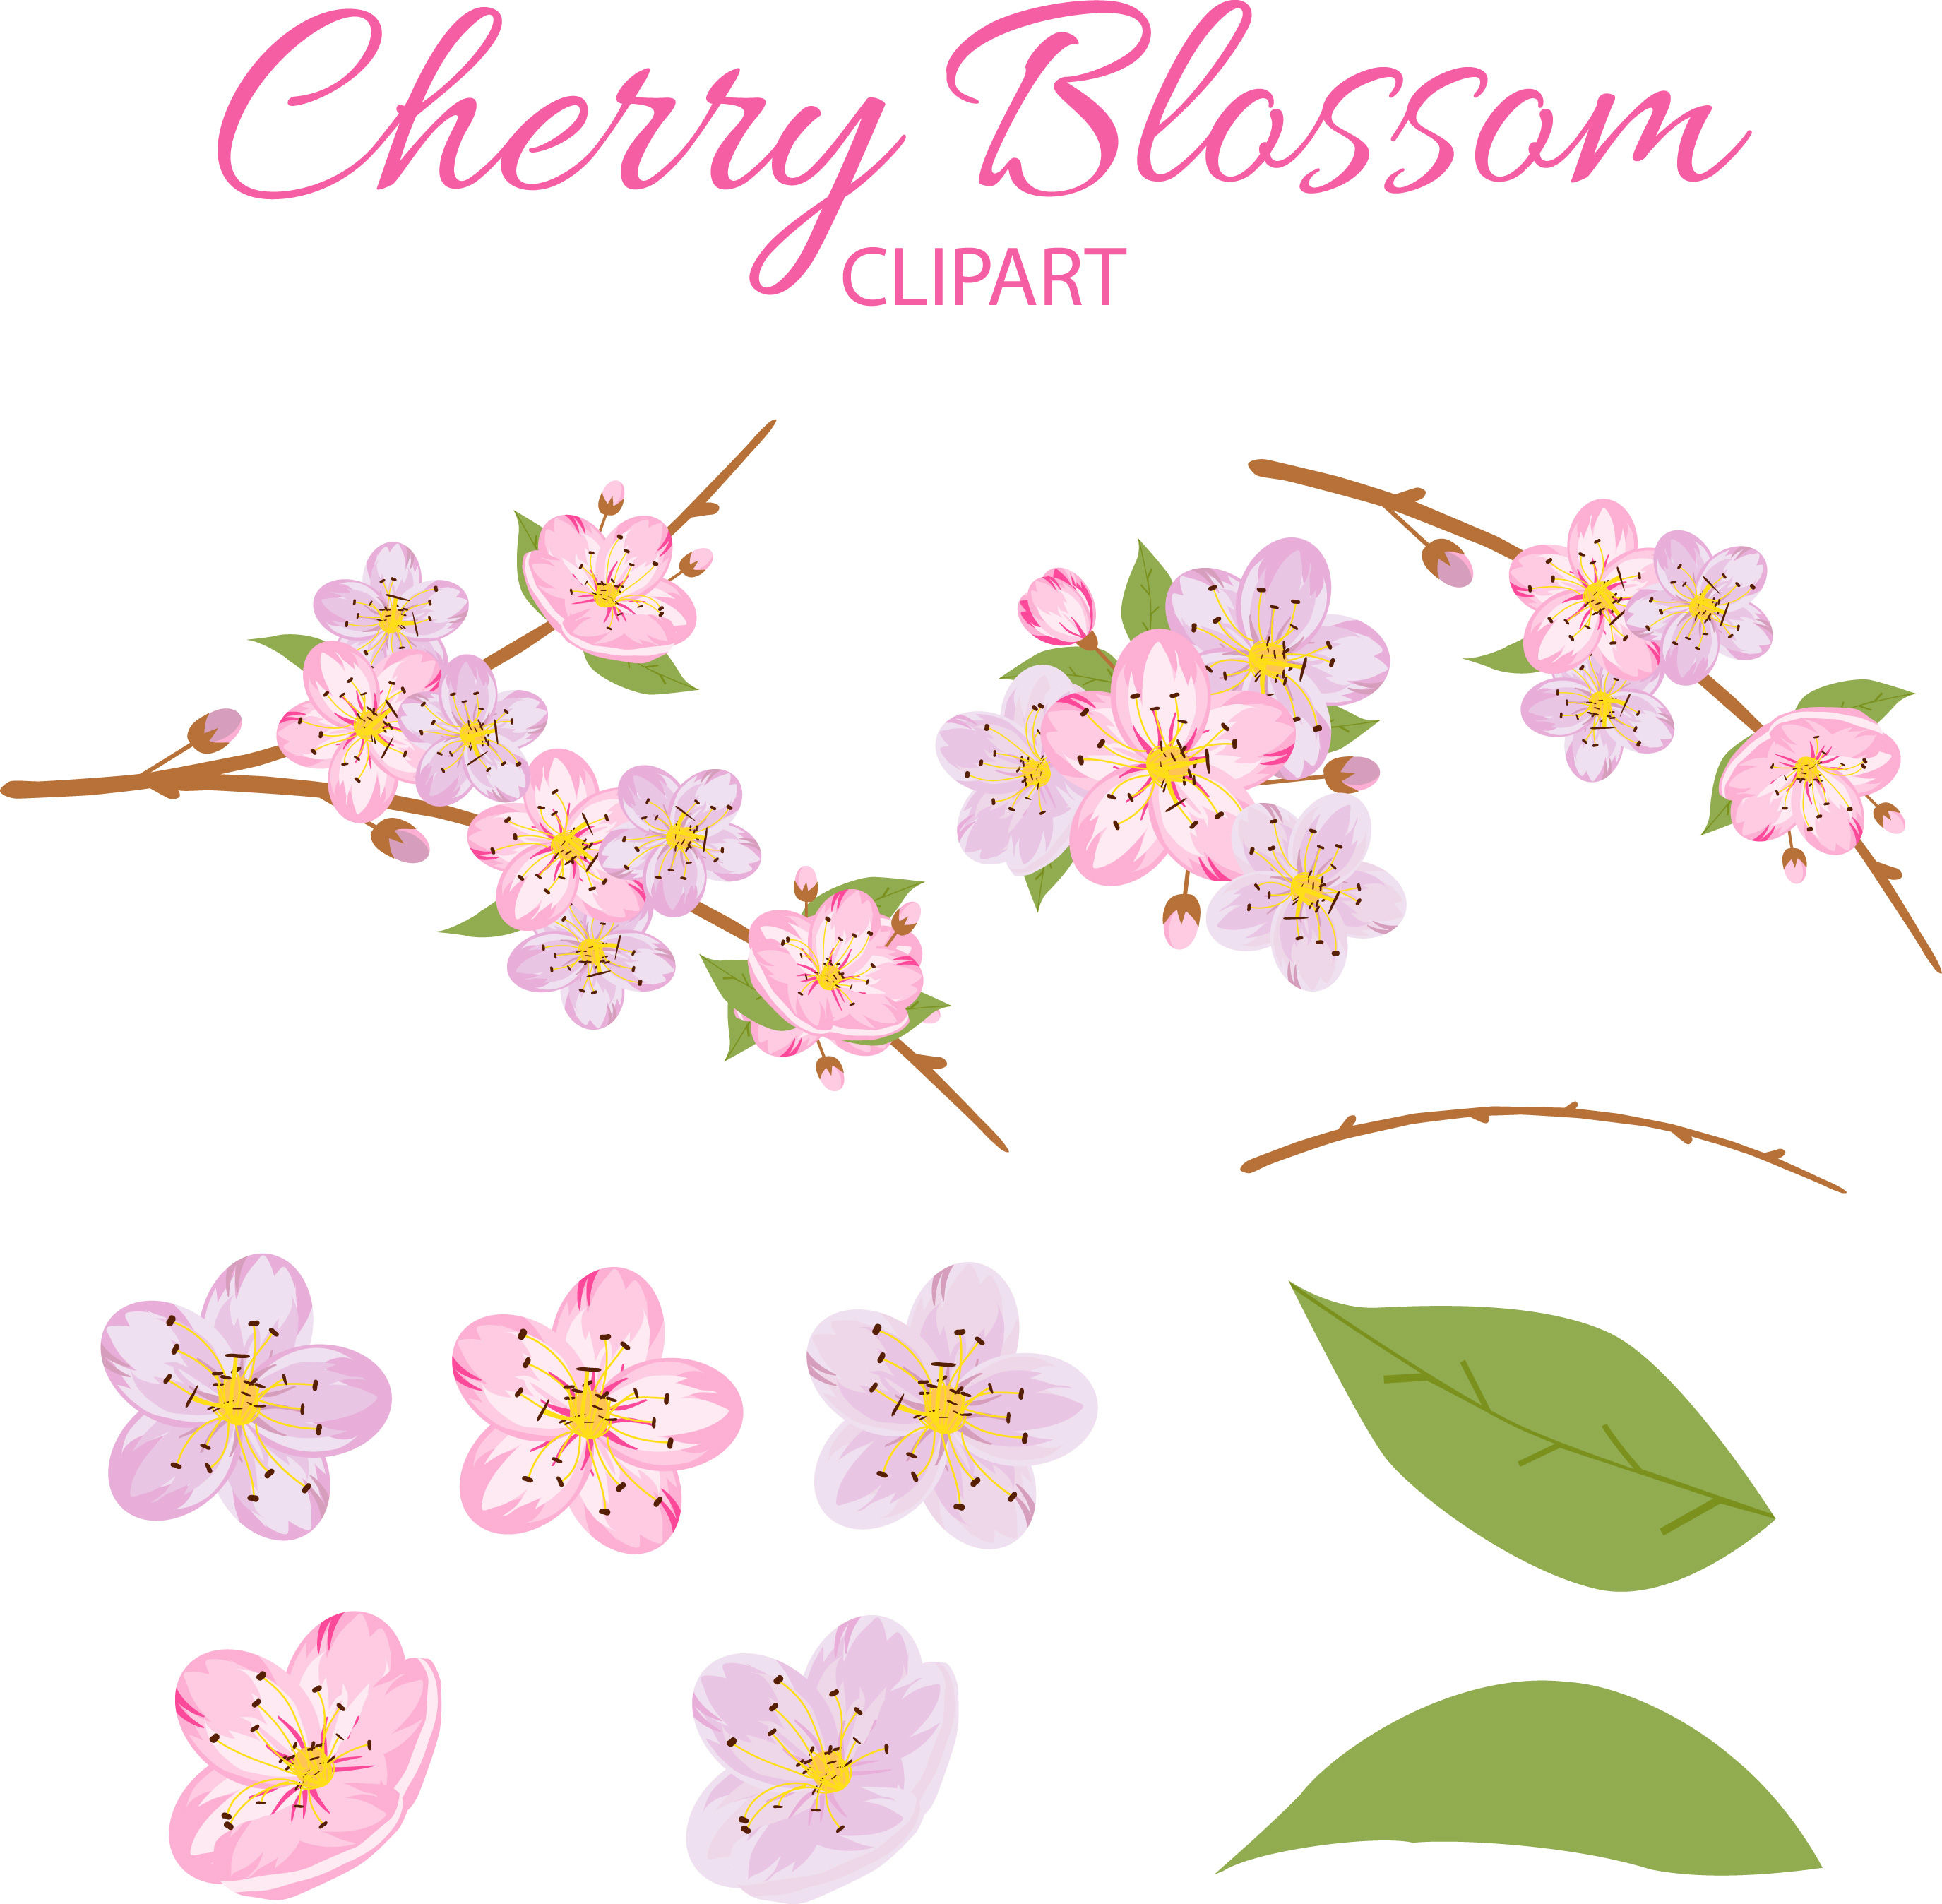 Cherry Blossom Clipart example image 3